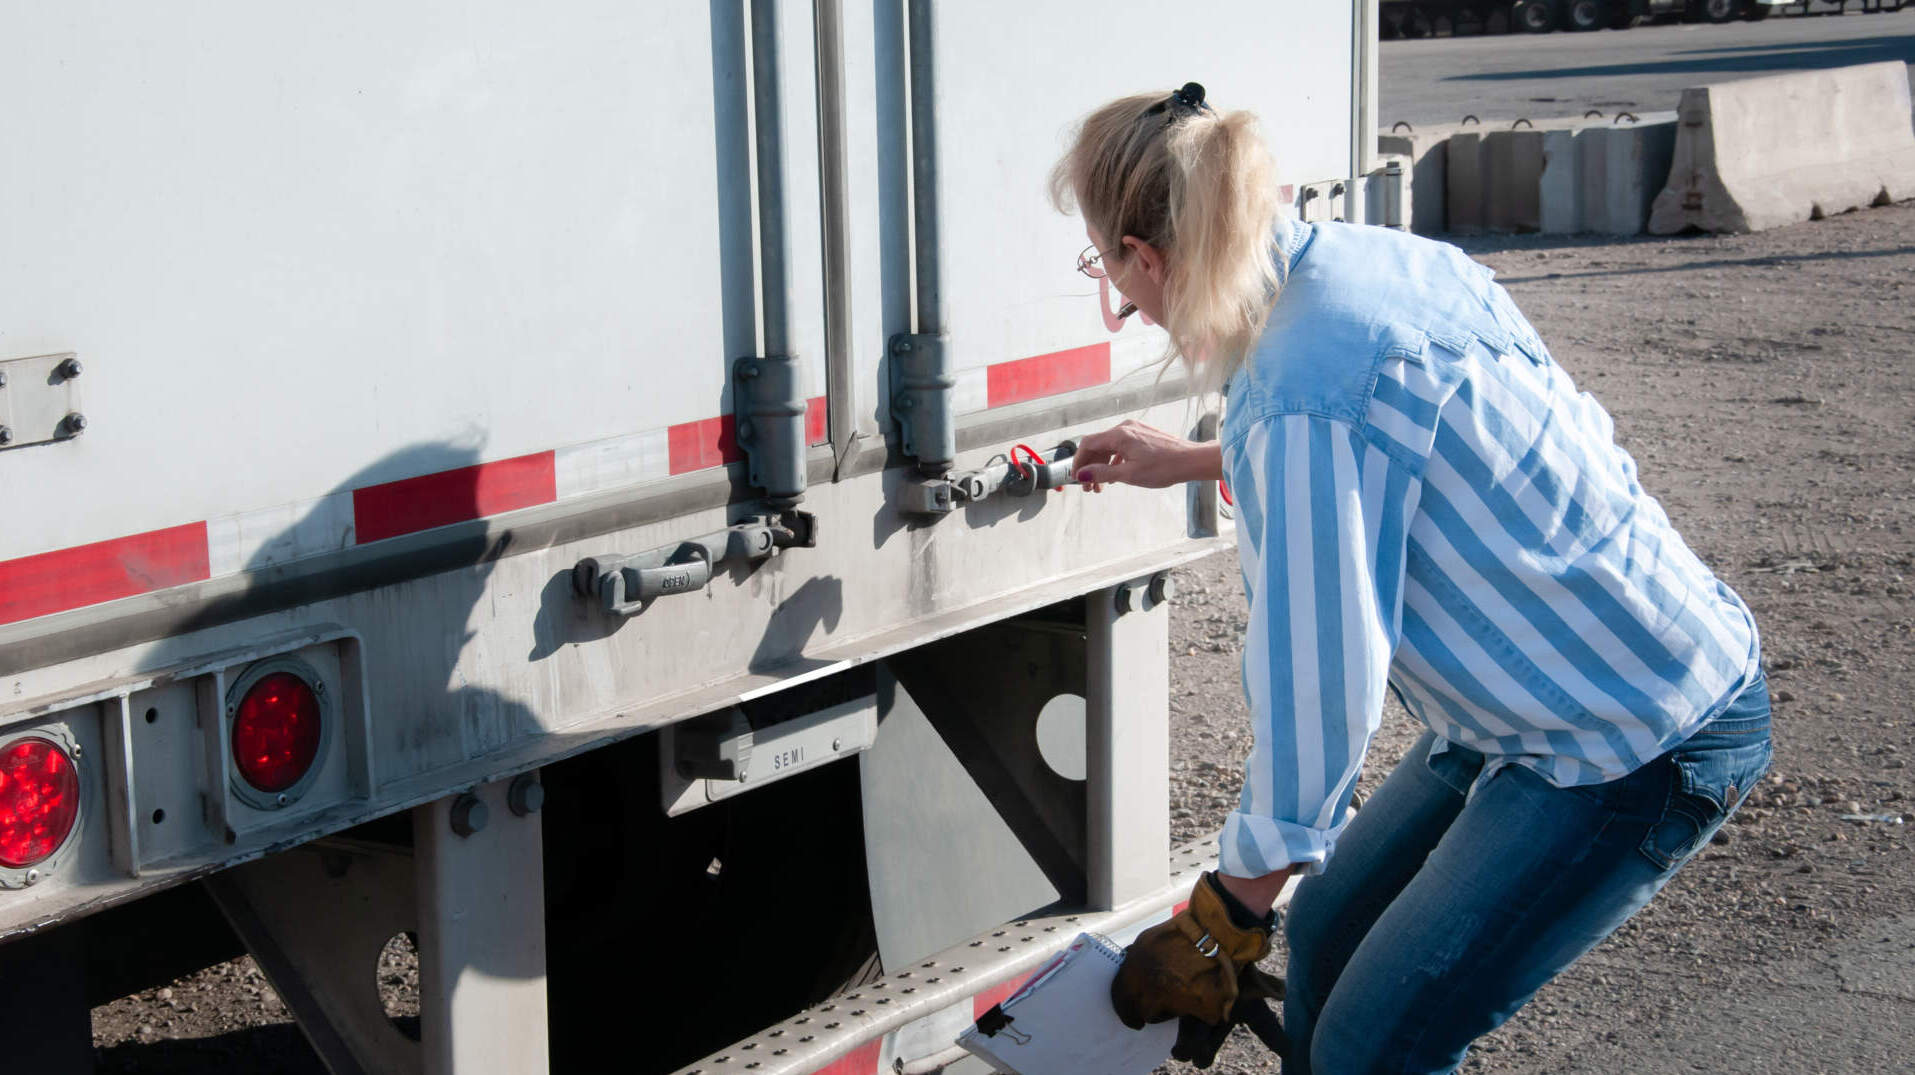 From sleepless nights to trailer theft, many long haul truckers face dangerous safety issues. How can logistics mitigate these risks?